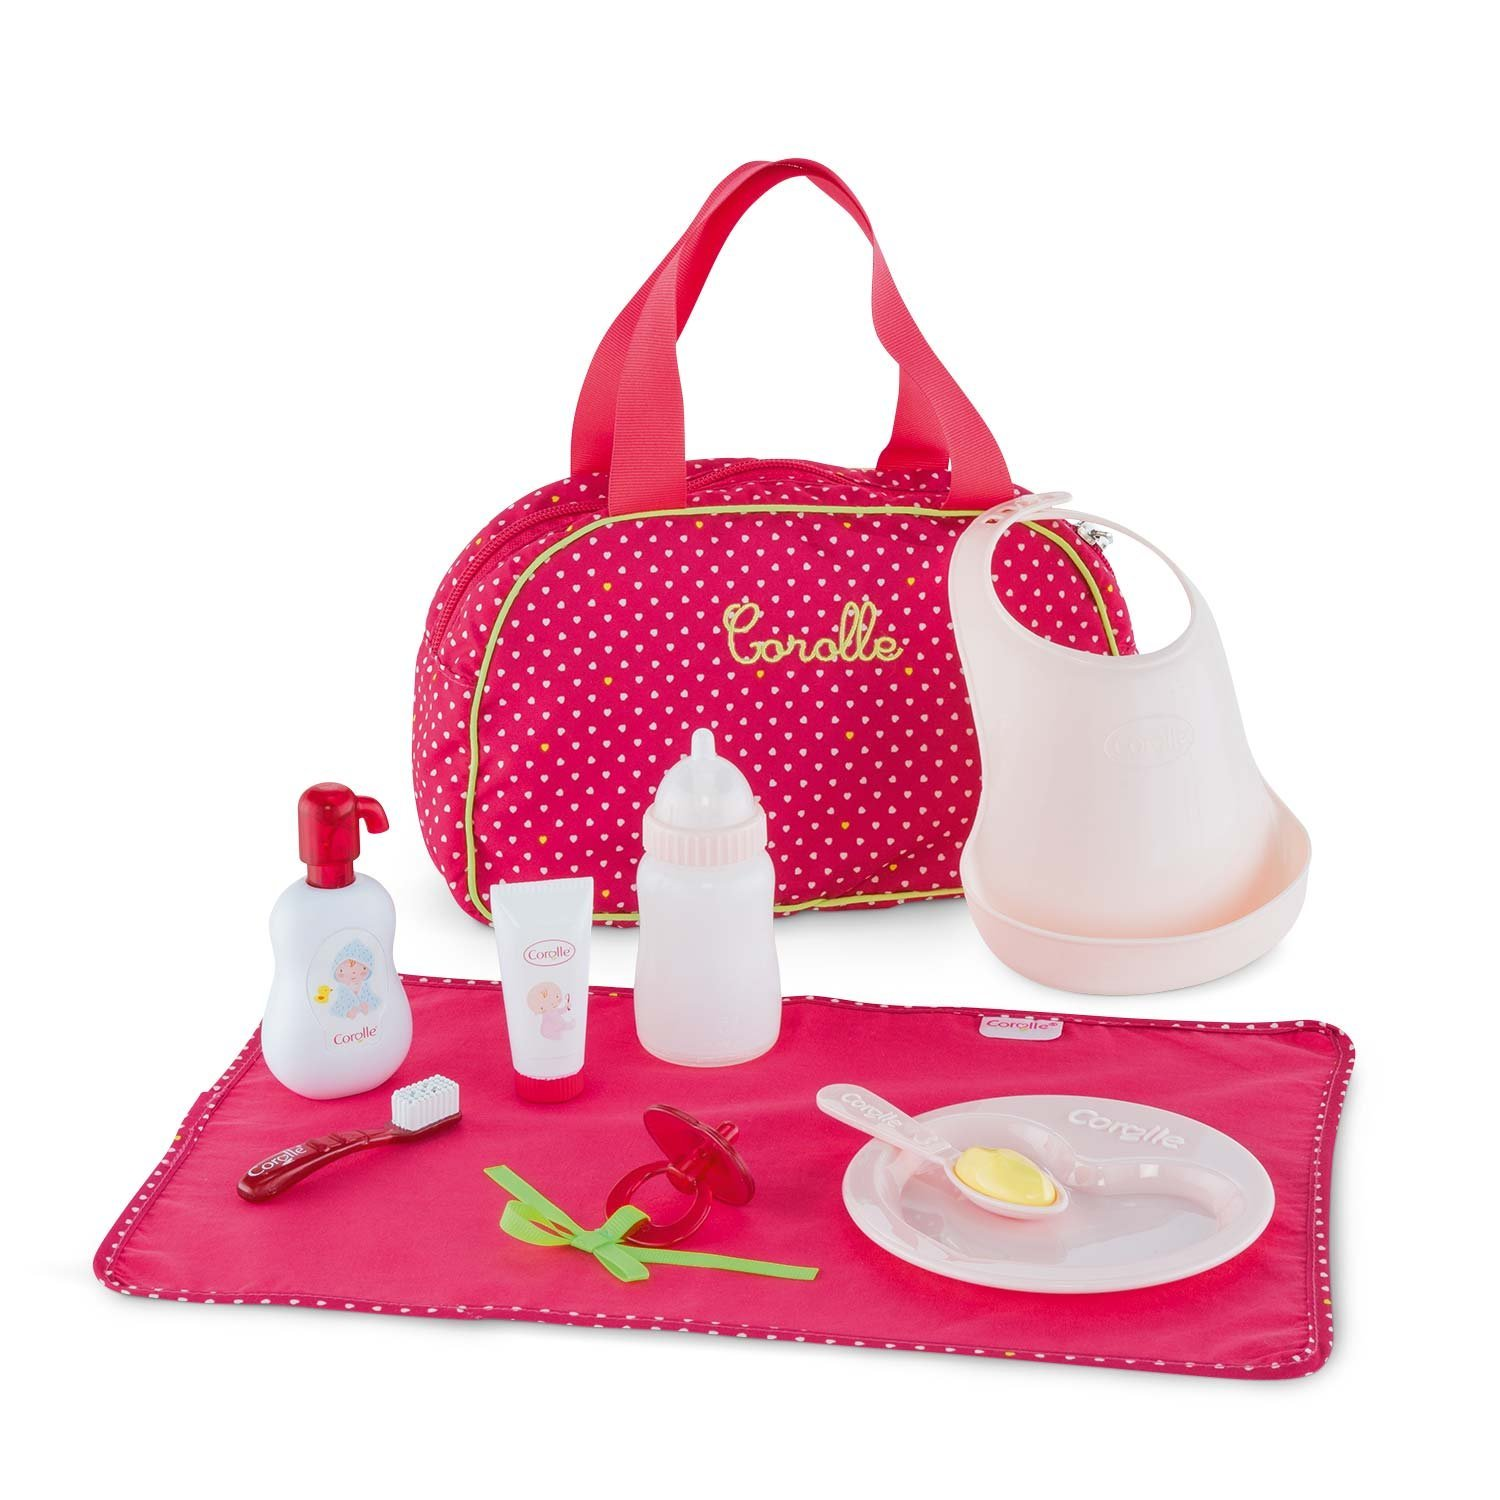 Mon Classique Cherry Baby Accessories Set, Everything little ones need to take care of their baby doll By... by